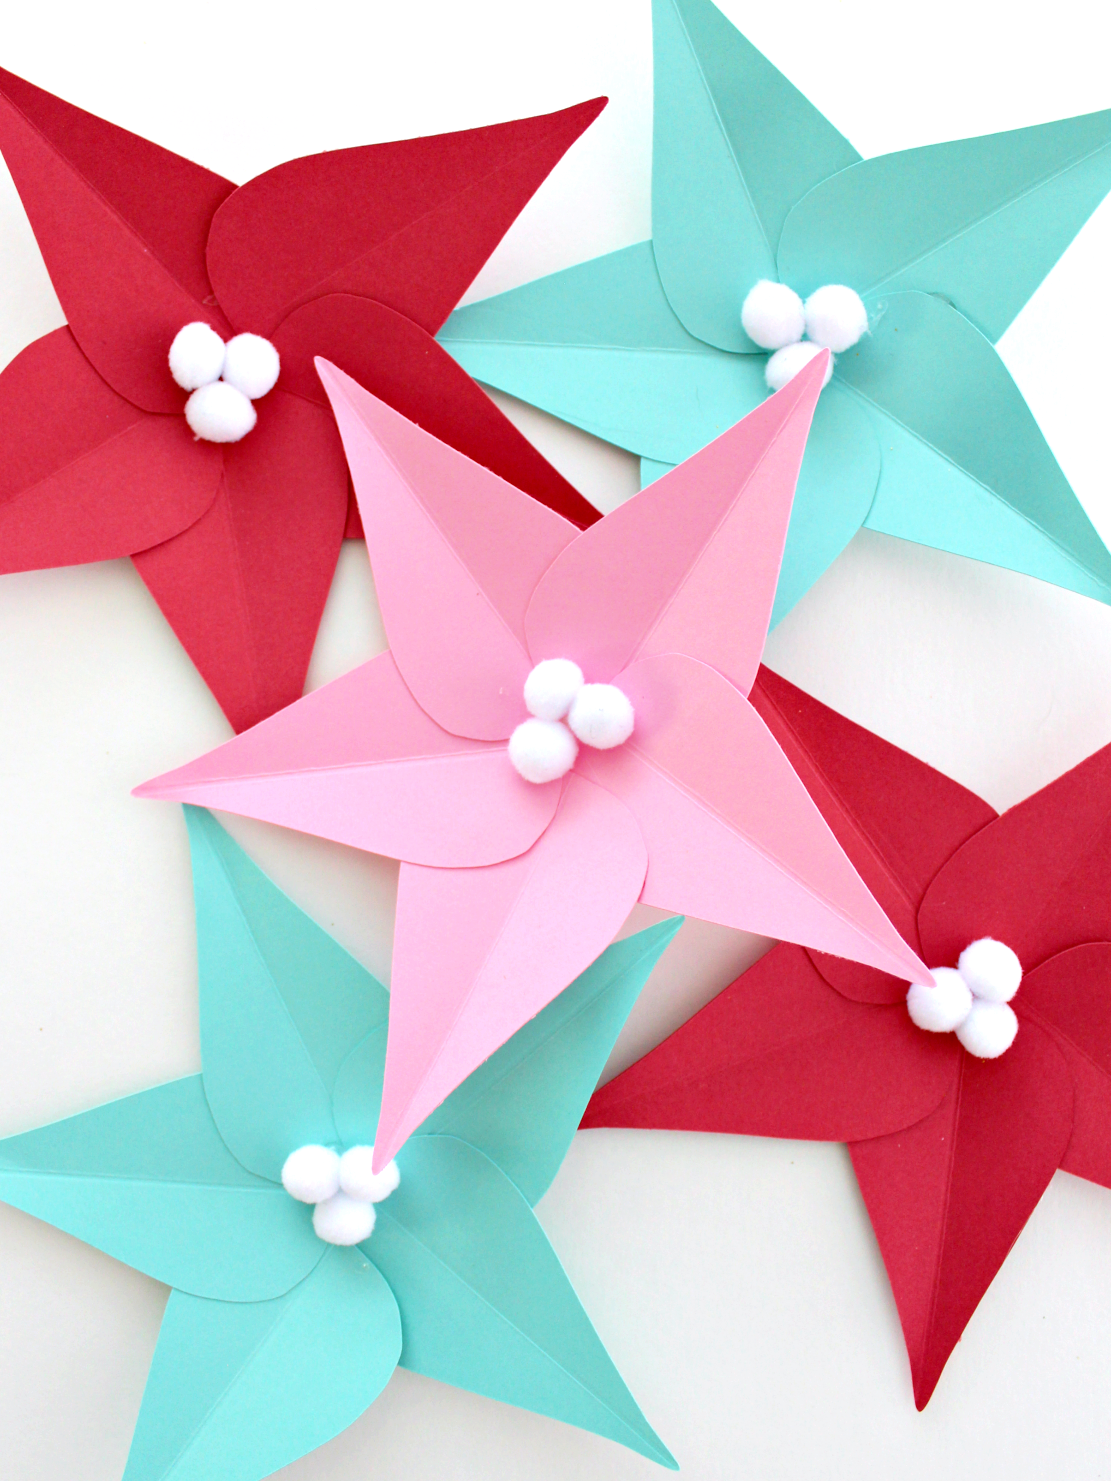 HOW TO MAKE PAPER POINSETTIA LEAVES (& FREE TEMPLATE)